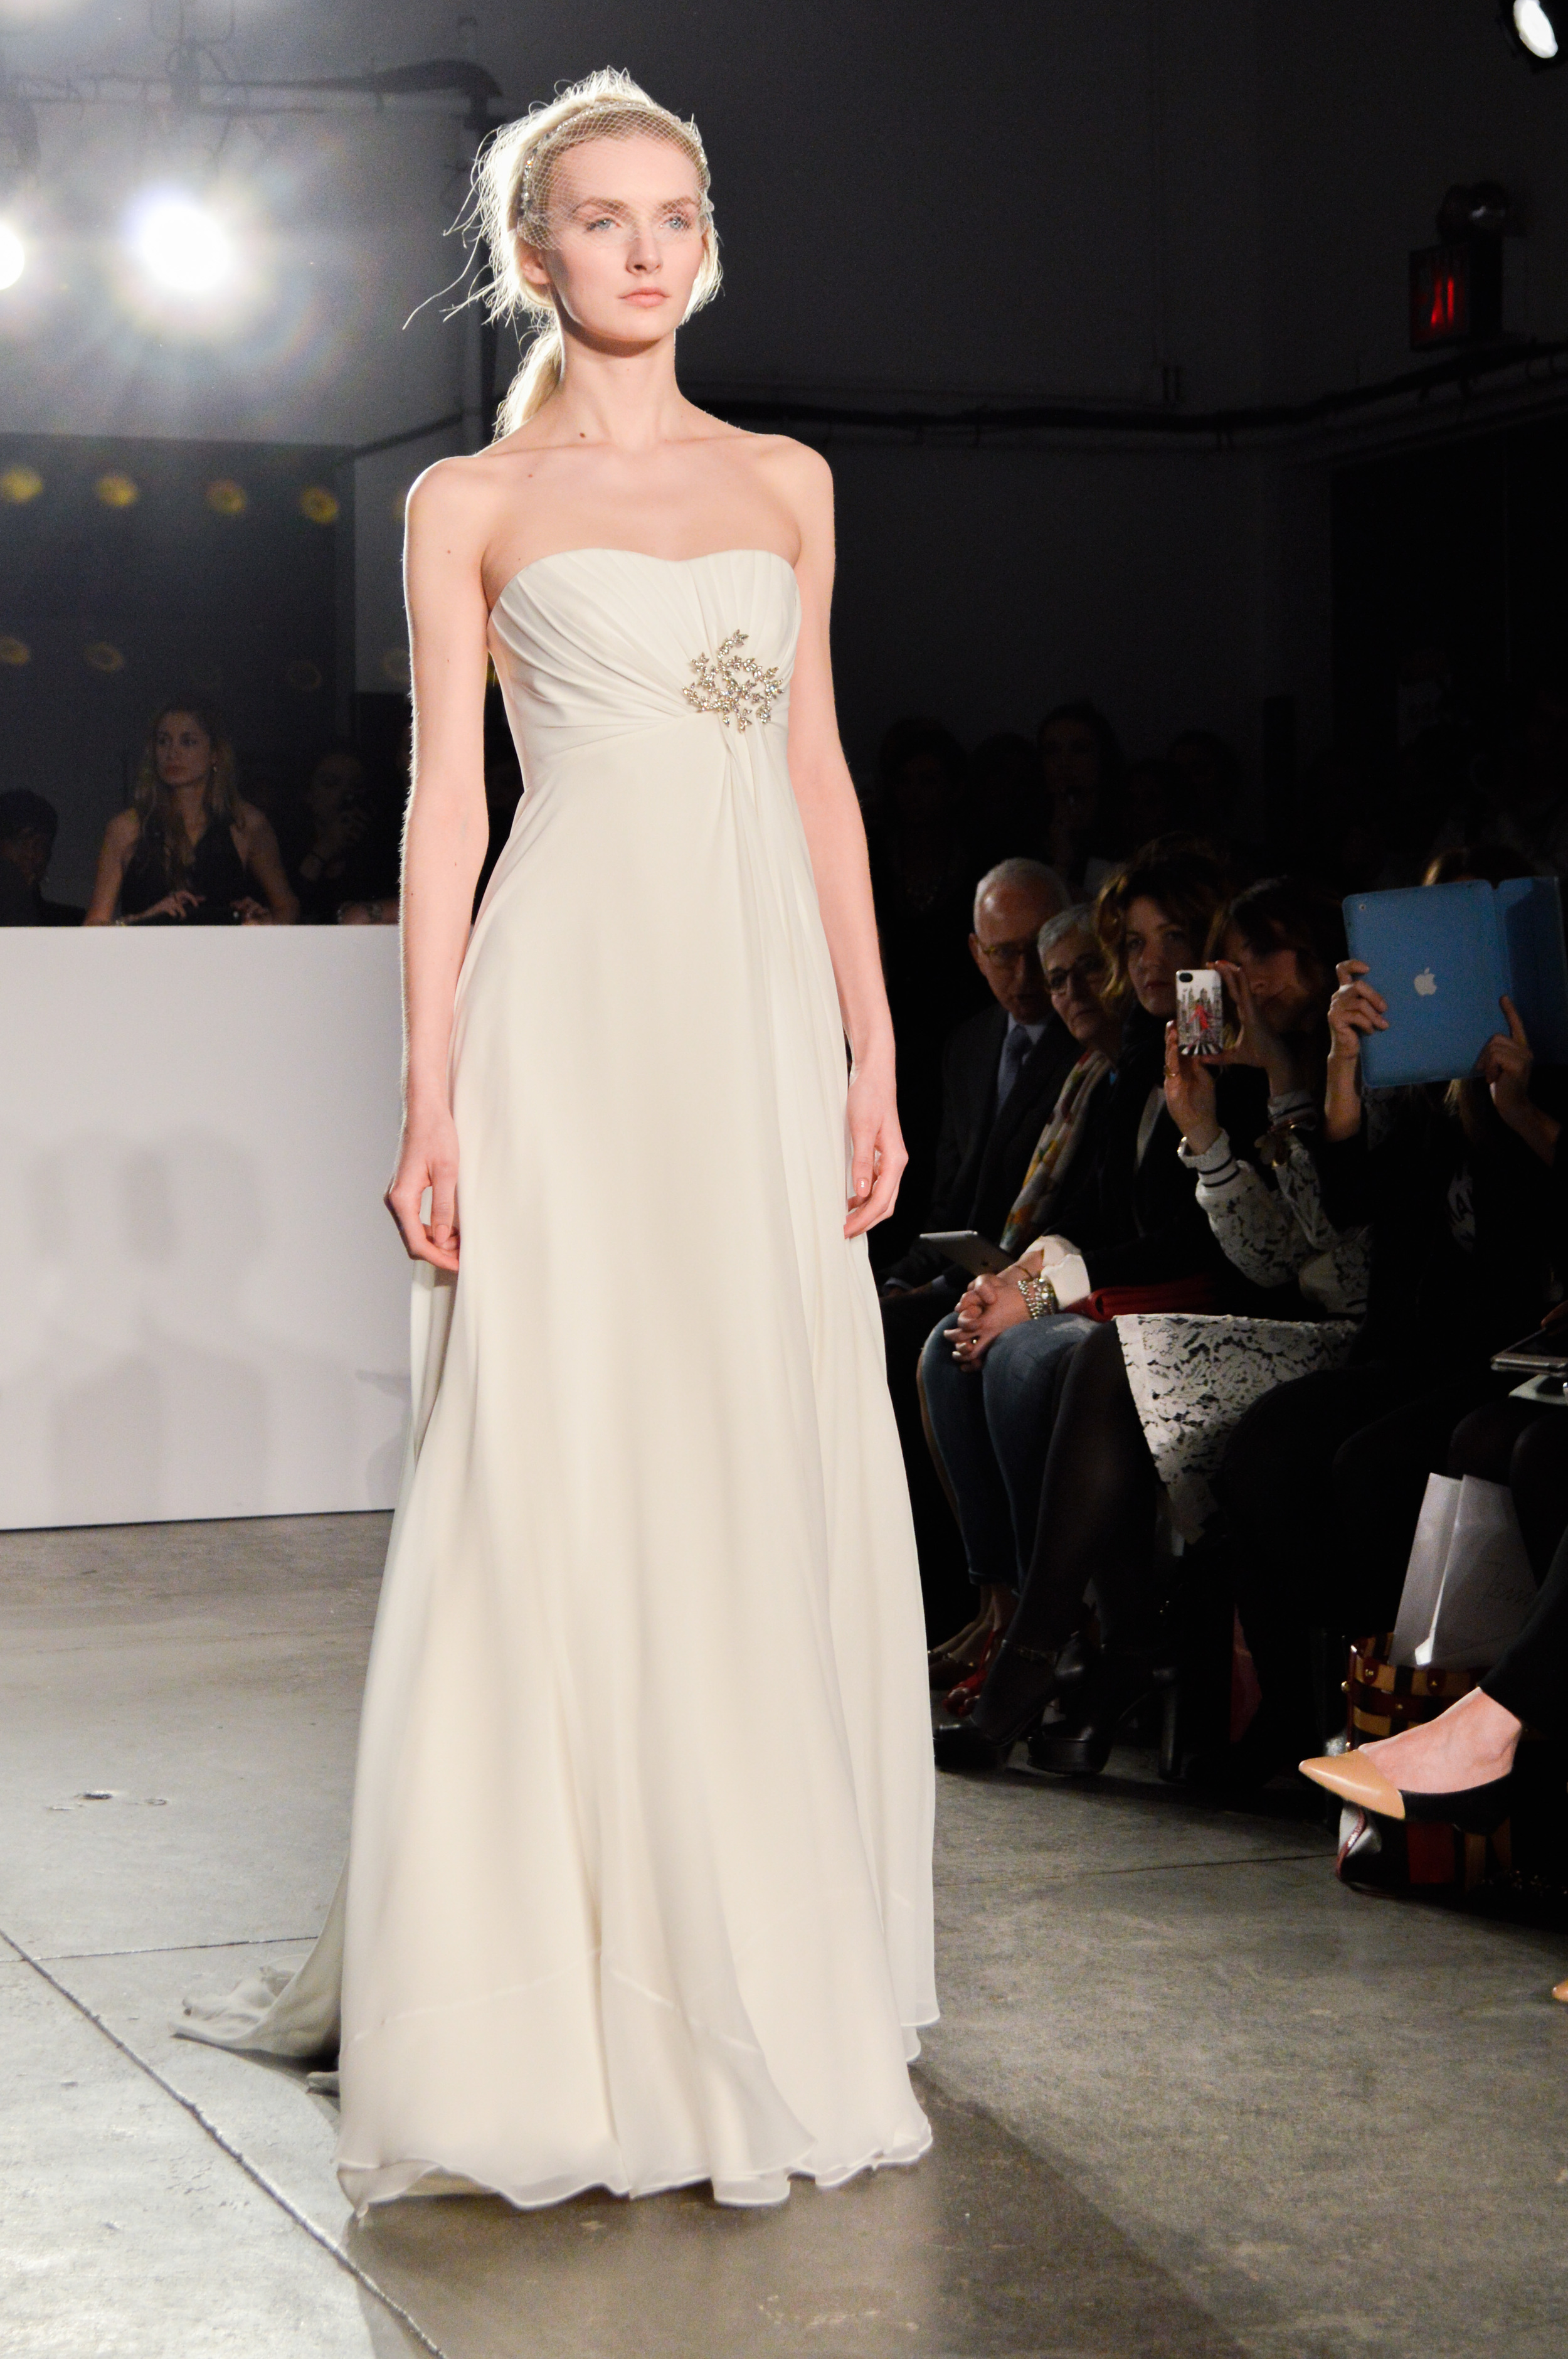 JennyPackham_Bridal Market April 2014-36